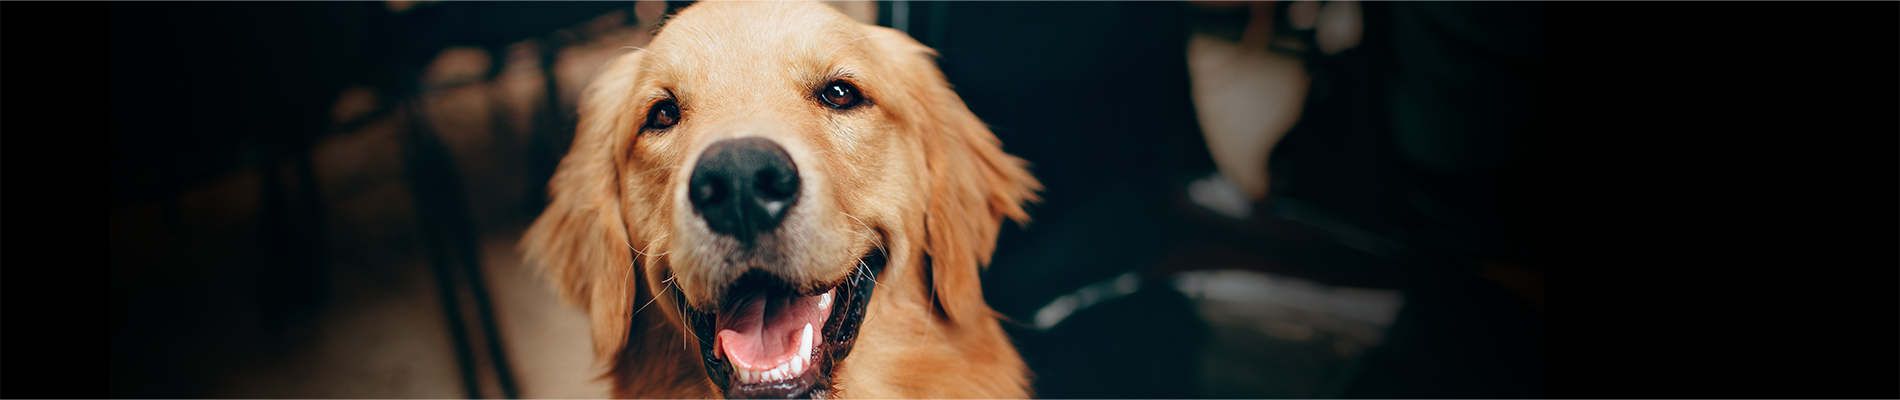 Best dog groomers in Indiana